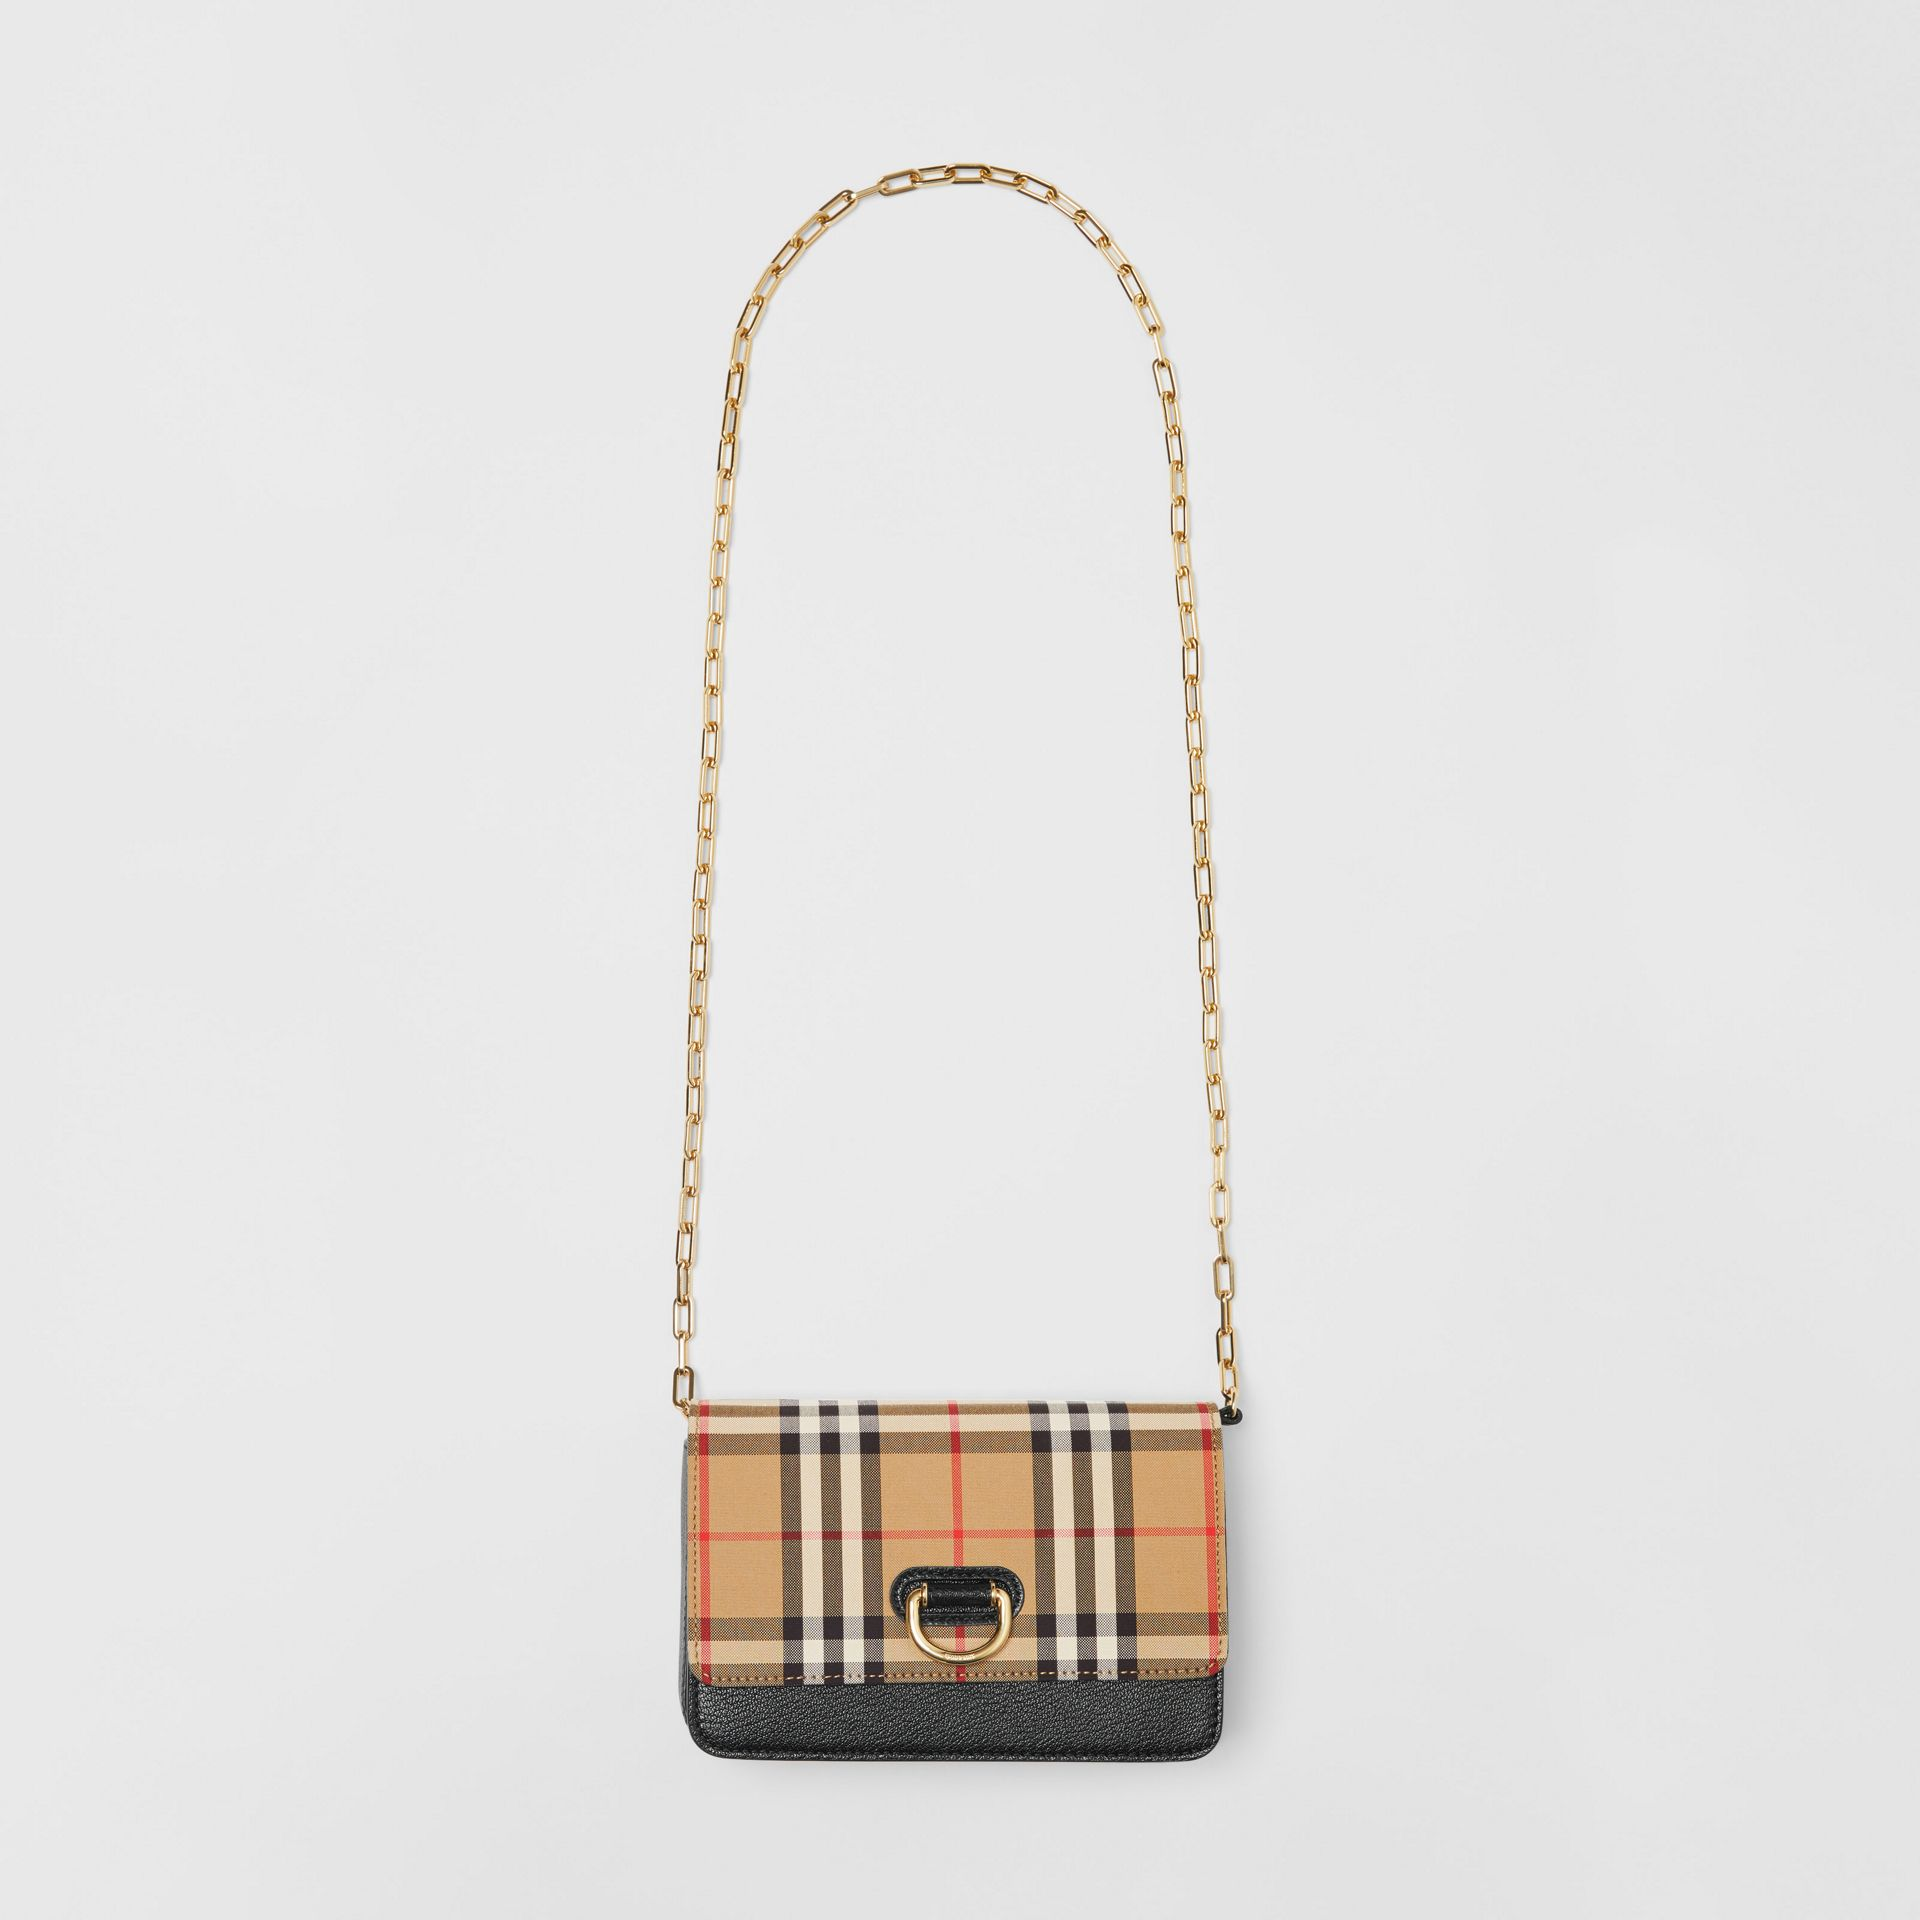 Mini sac The D-ring en cuir et Vintage check (Noir) - Femme | Burberry - photo de la galerie 3